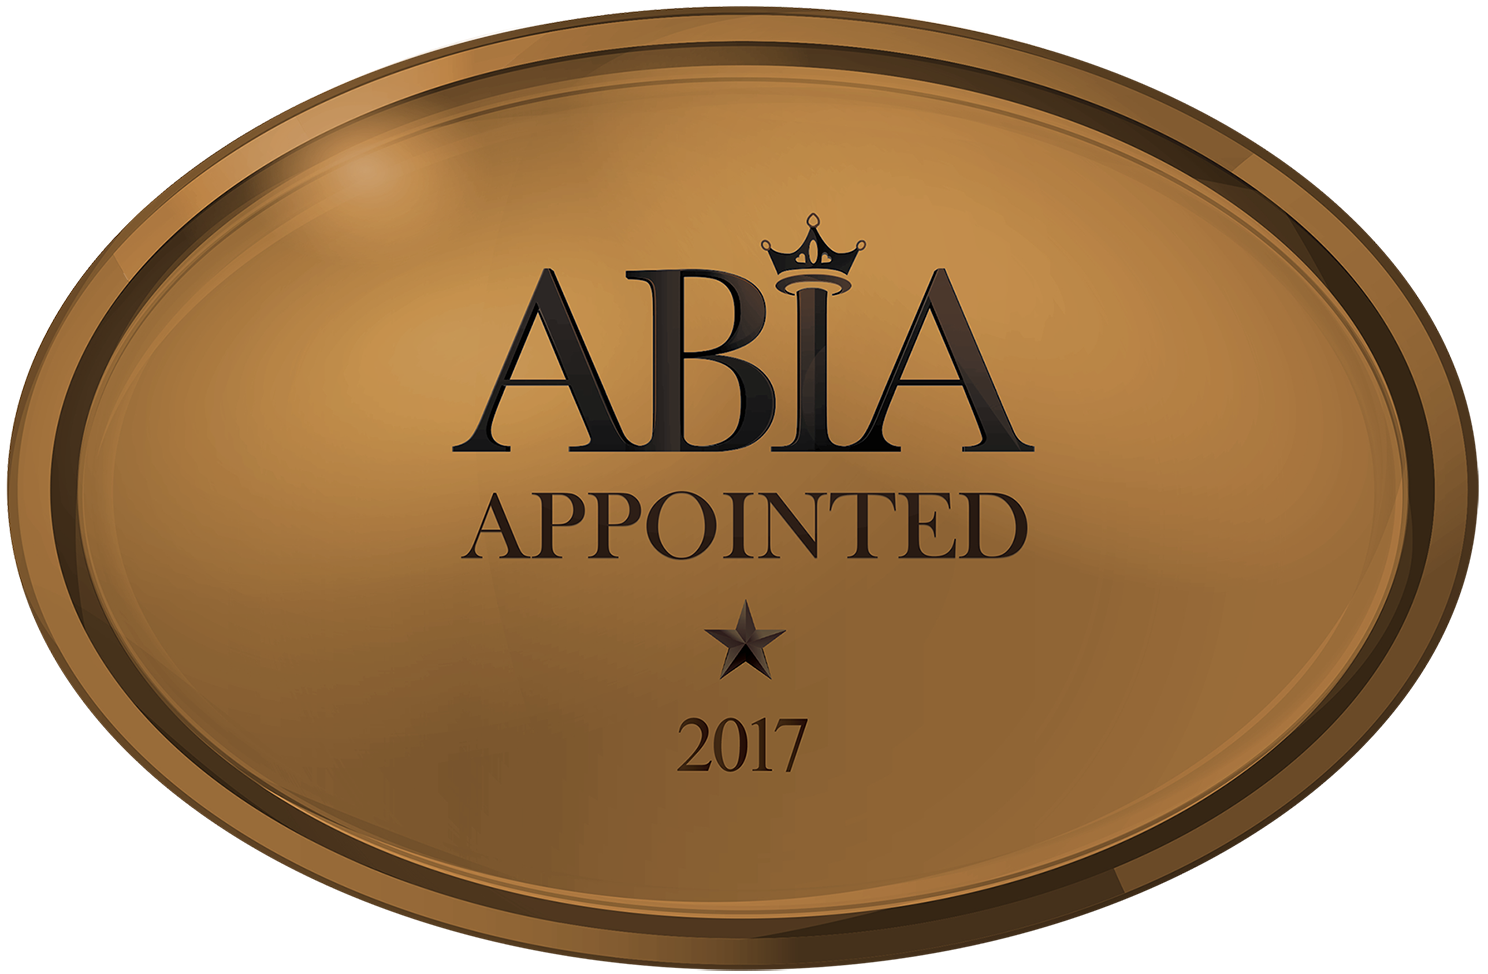 ABIA Appointed 2017